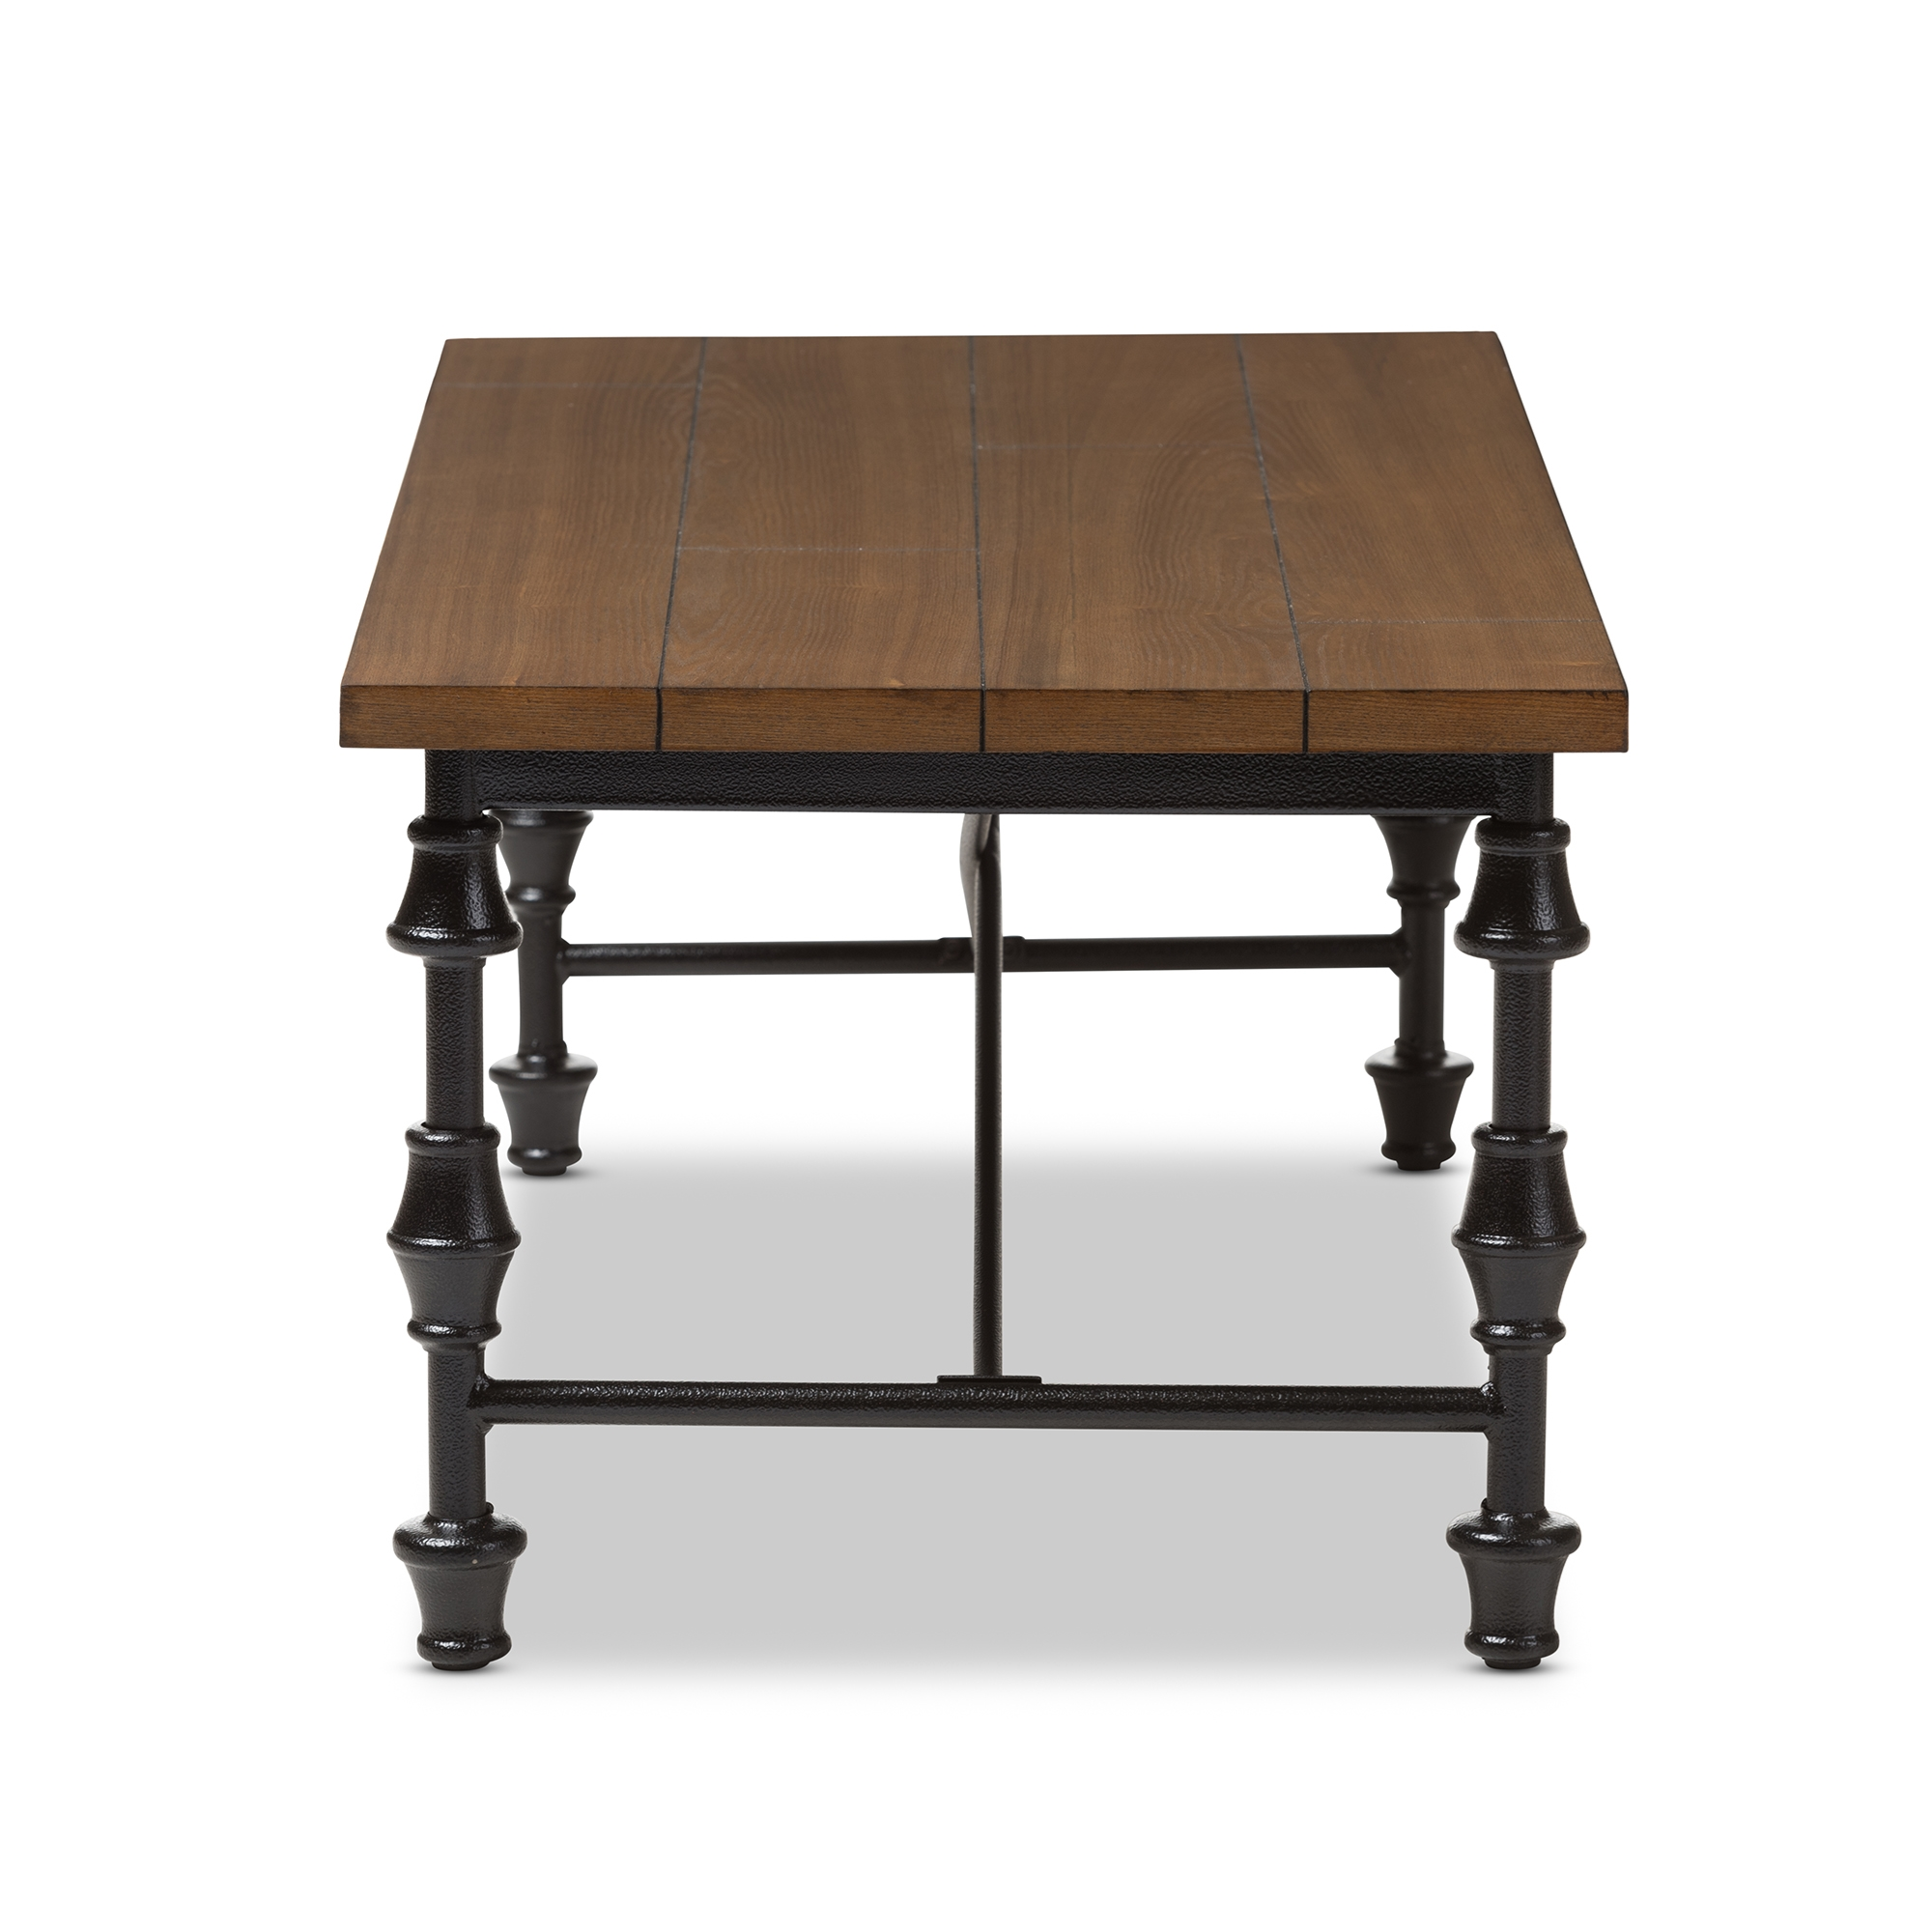 ... Baxton Studio Julian Rustic Industrial Style Antique Black Textured  Finished Metal Distressed Wood Occasional Coffee Table ...